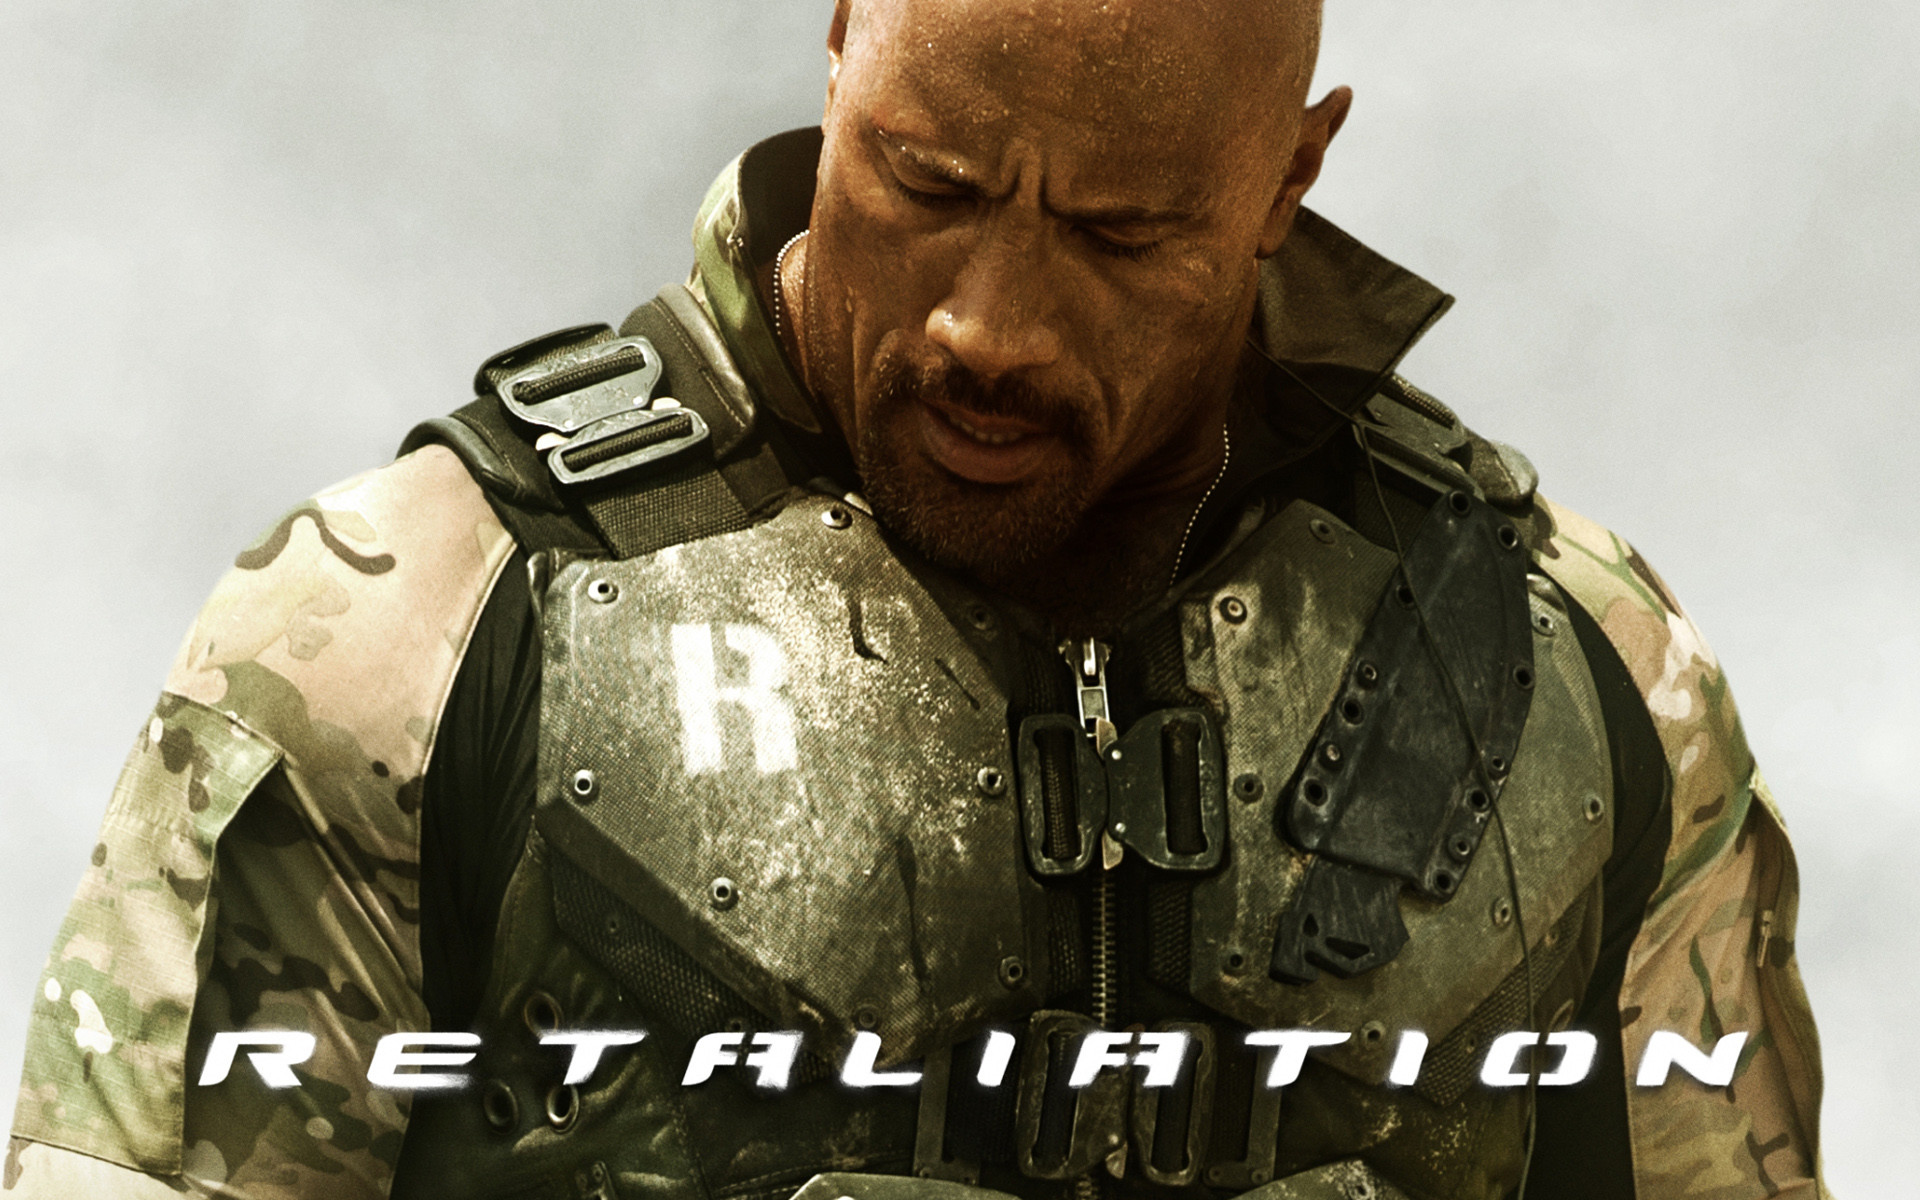 1920x1200 The Rock in GI Joe 2 Retaliation